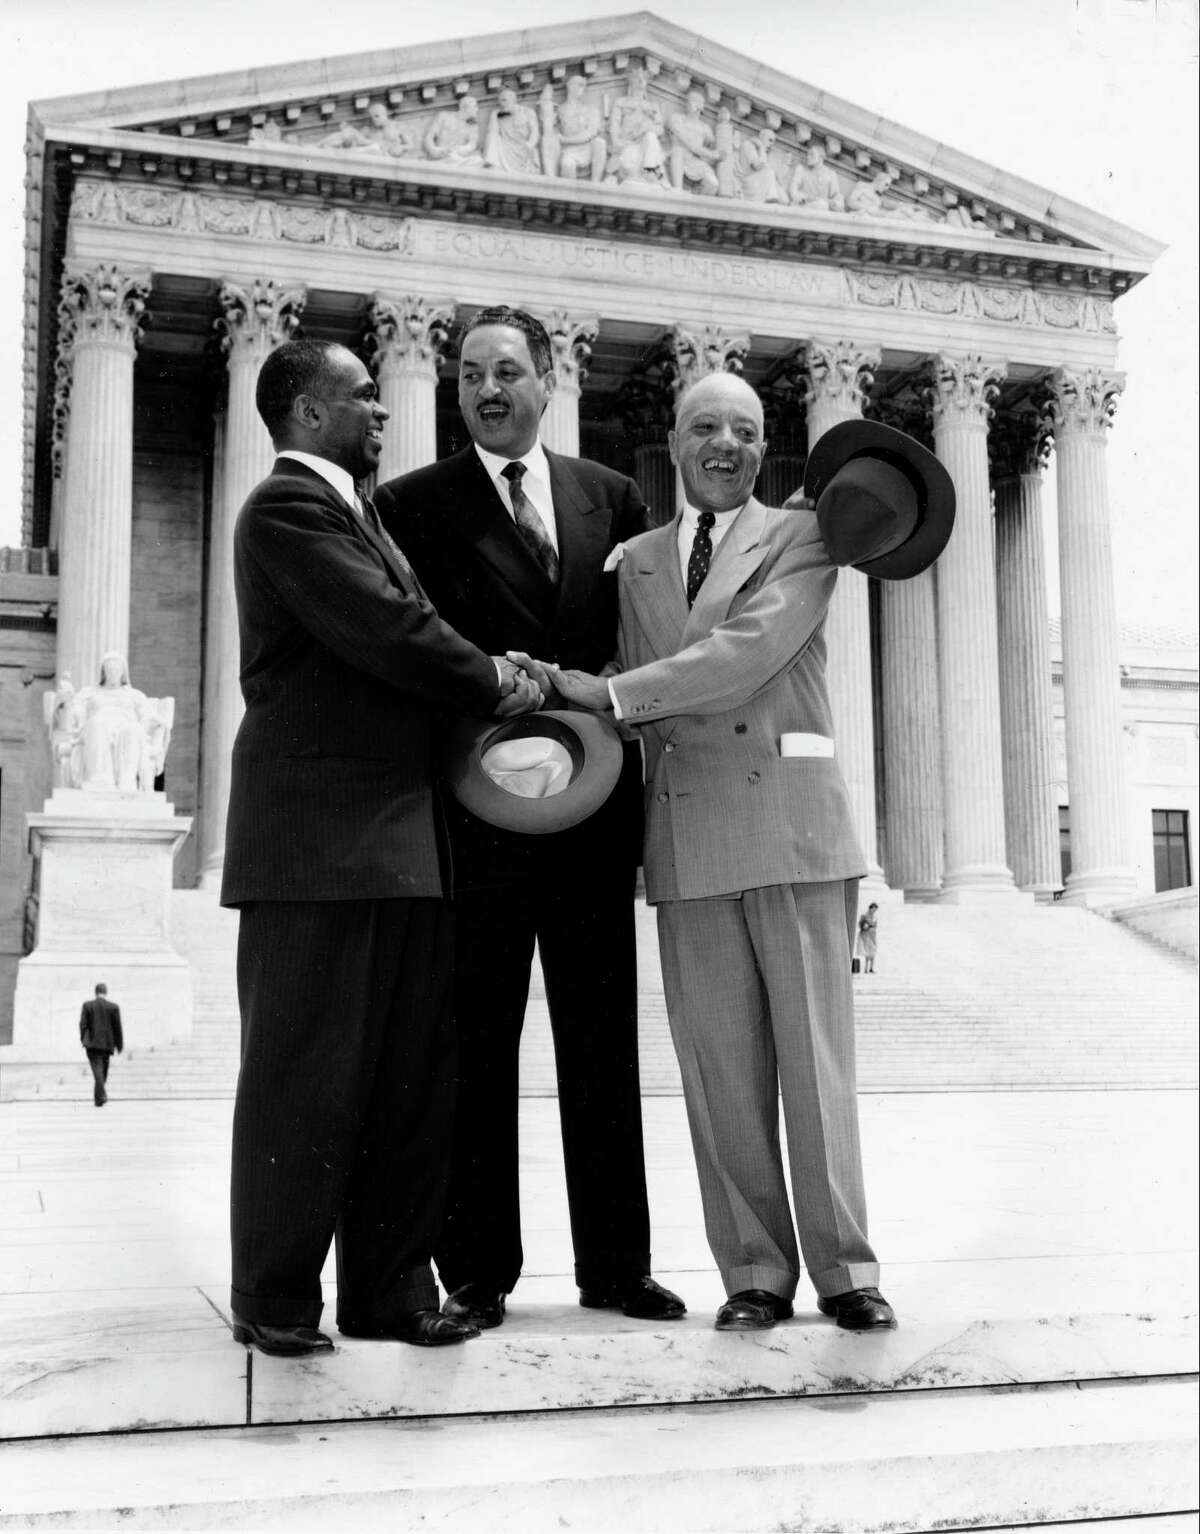 This May 17, 1954 file photo shows, from left, George E.C. Hayes, Thurgood Marshall and James M. Nabrit joining hands as they pose outside the Supreme Court in Washington. The three lawyers led the fight for abolition of segregation in public schools before the Supreme Court, which ruled that segregation is unconstitutional. (AP Photo, File)